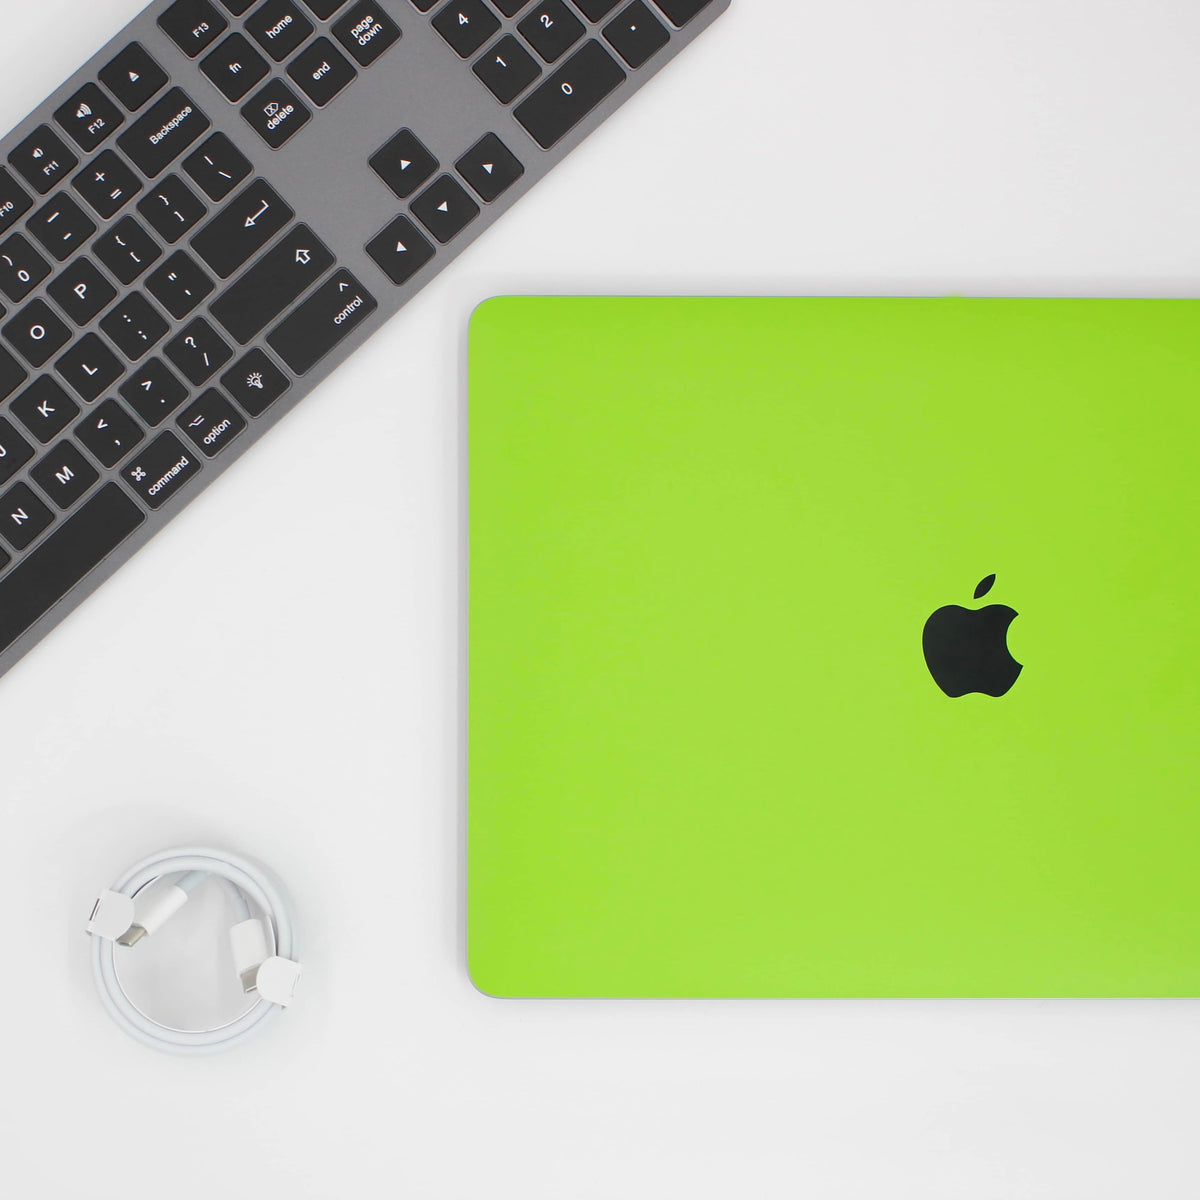 MacBook Lime Green Skin